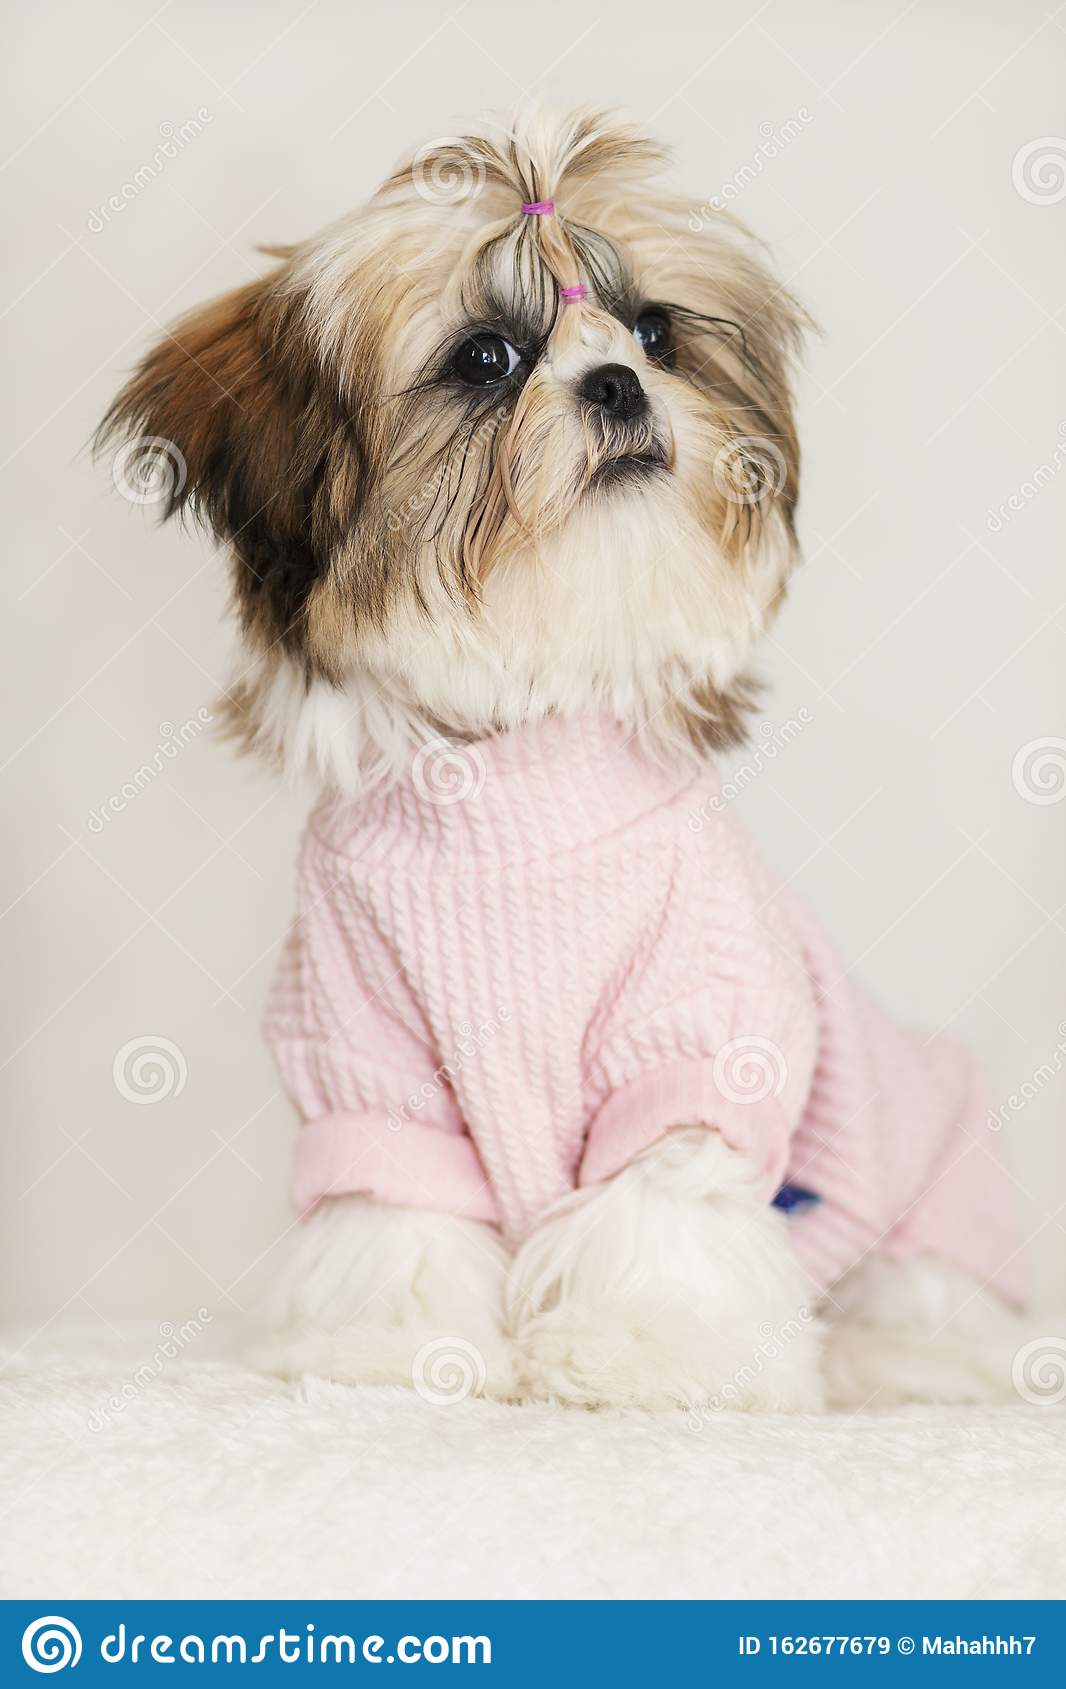 Beautiful Shih Tzu Puppy Cute Sitting Dressed In Pink And Beautiful Haircut Stock Image Image Of Dressed Shih 162677679